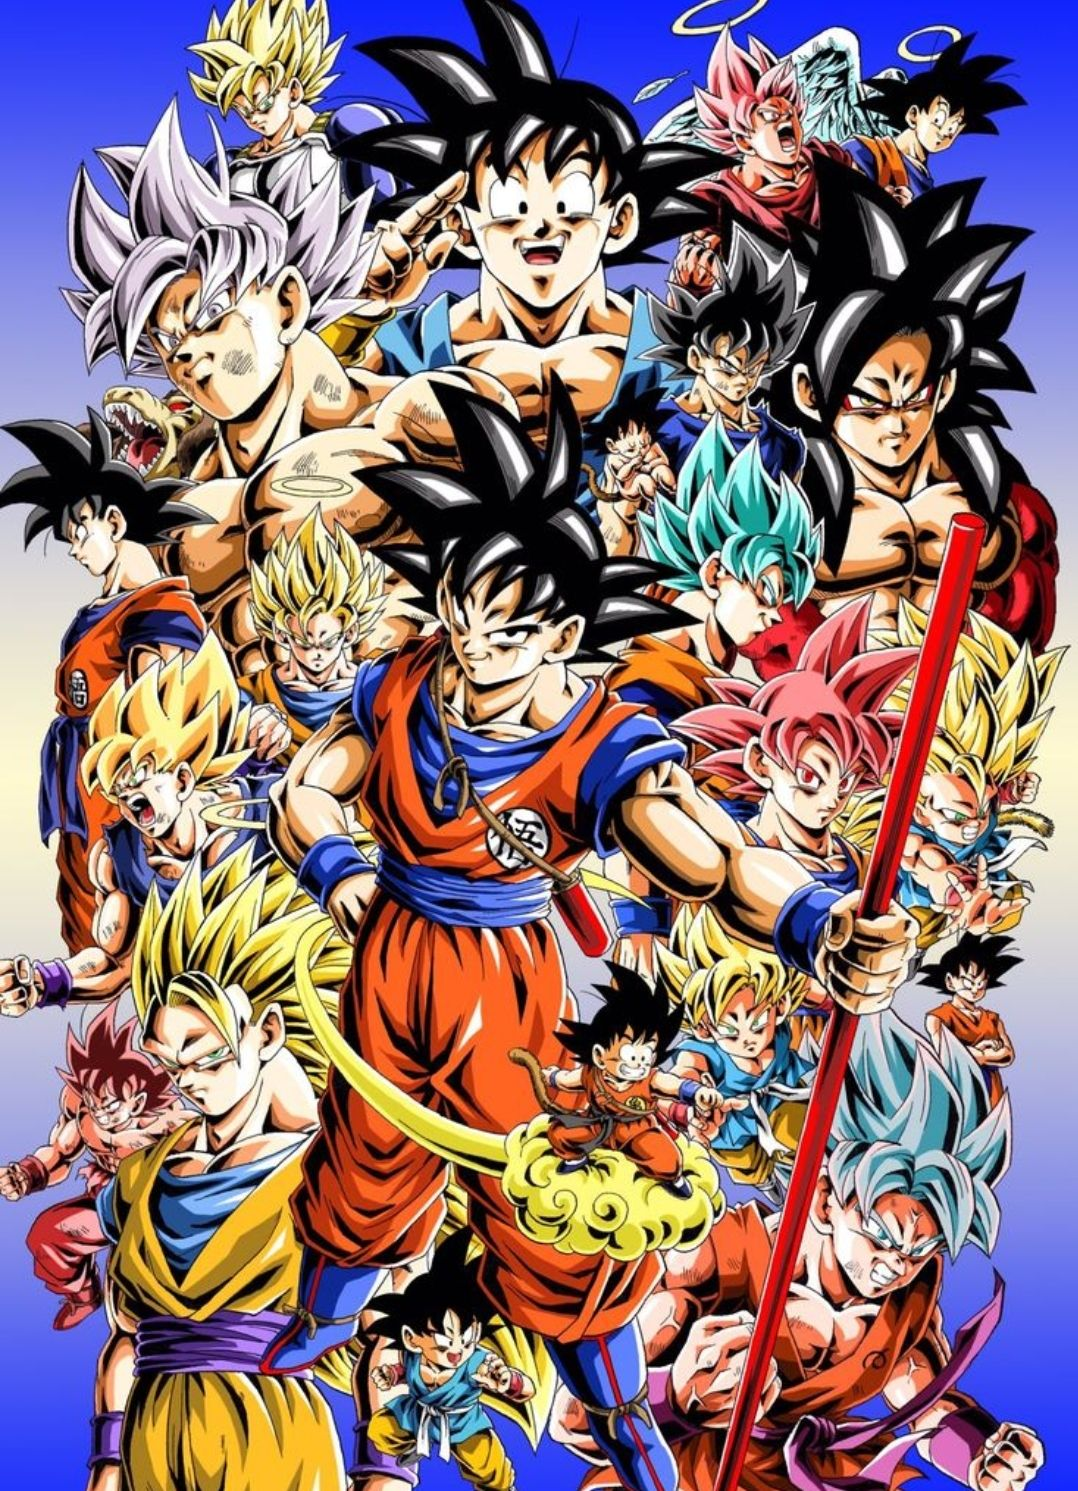 RP Dragon Ball Z V 2 - Autorisation - Wattpad